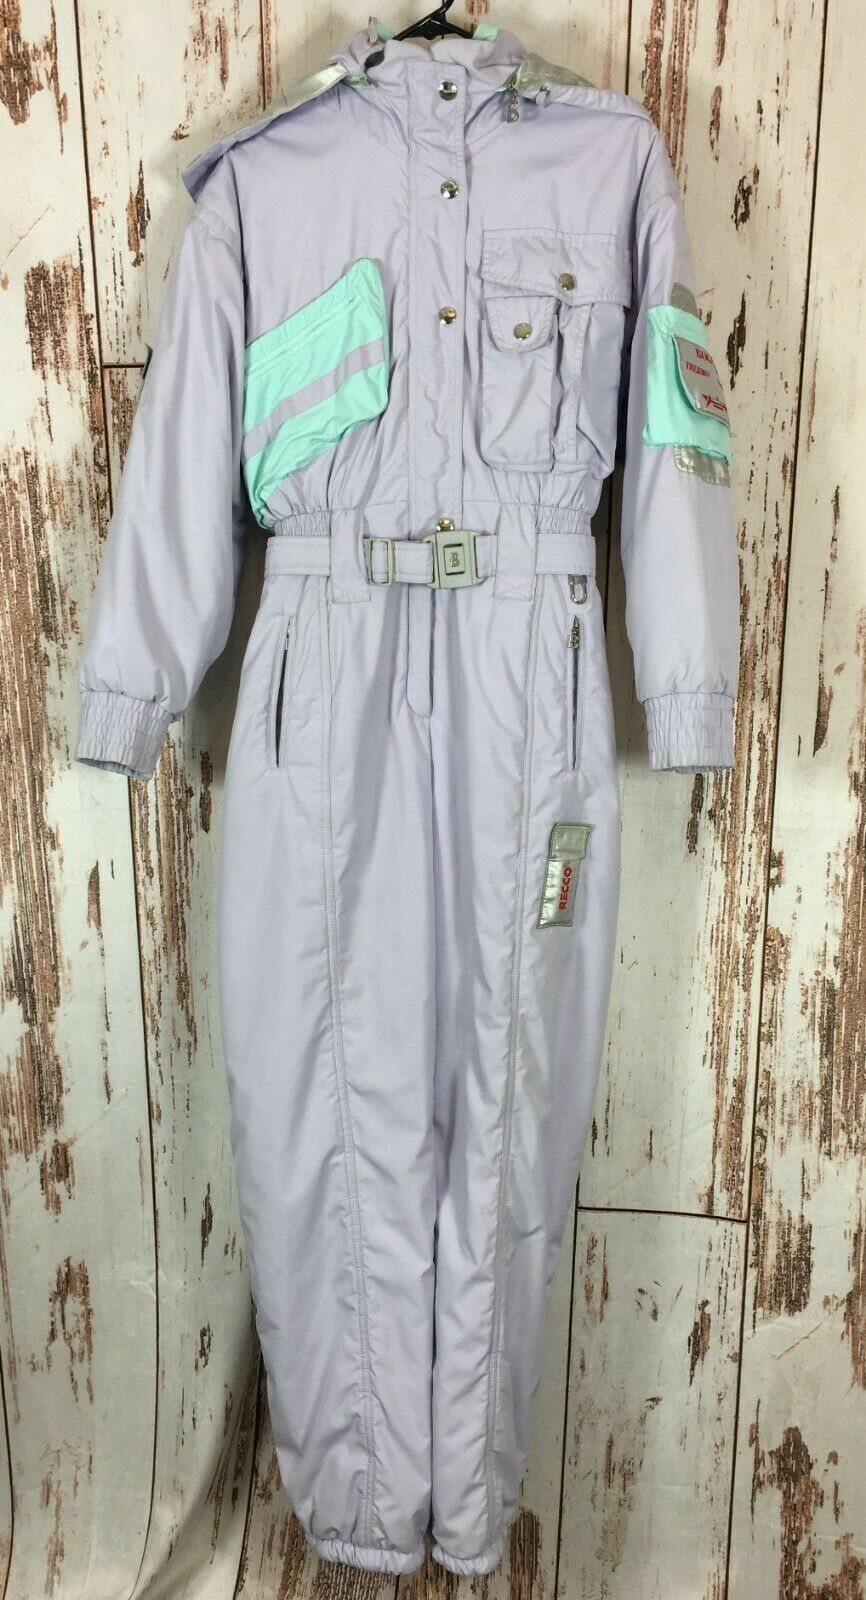 Bogner Thermo System damen Größe 8 lila Insulated Snow Ski Suit Recco